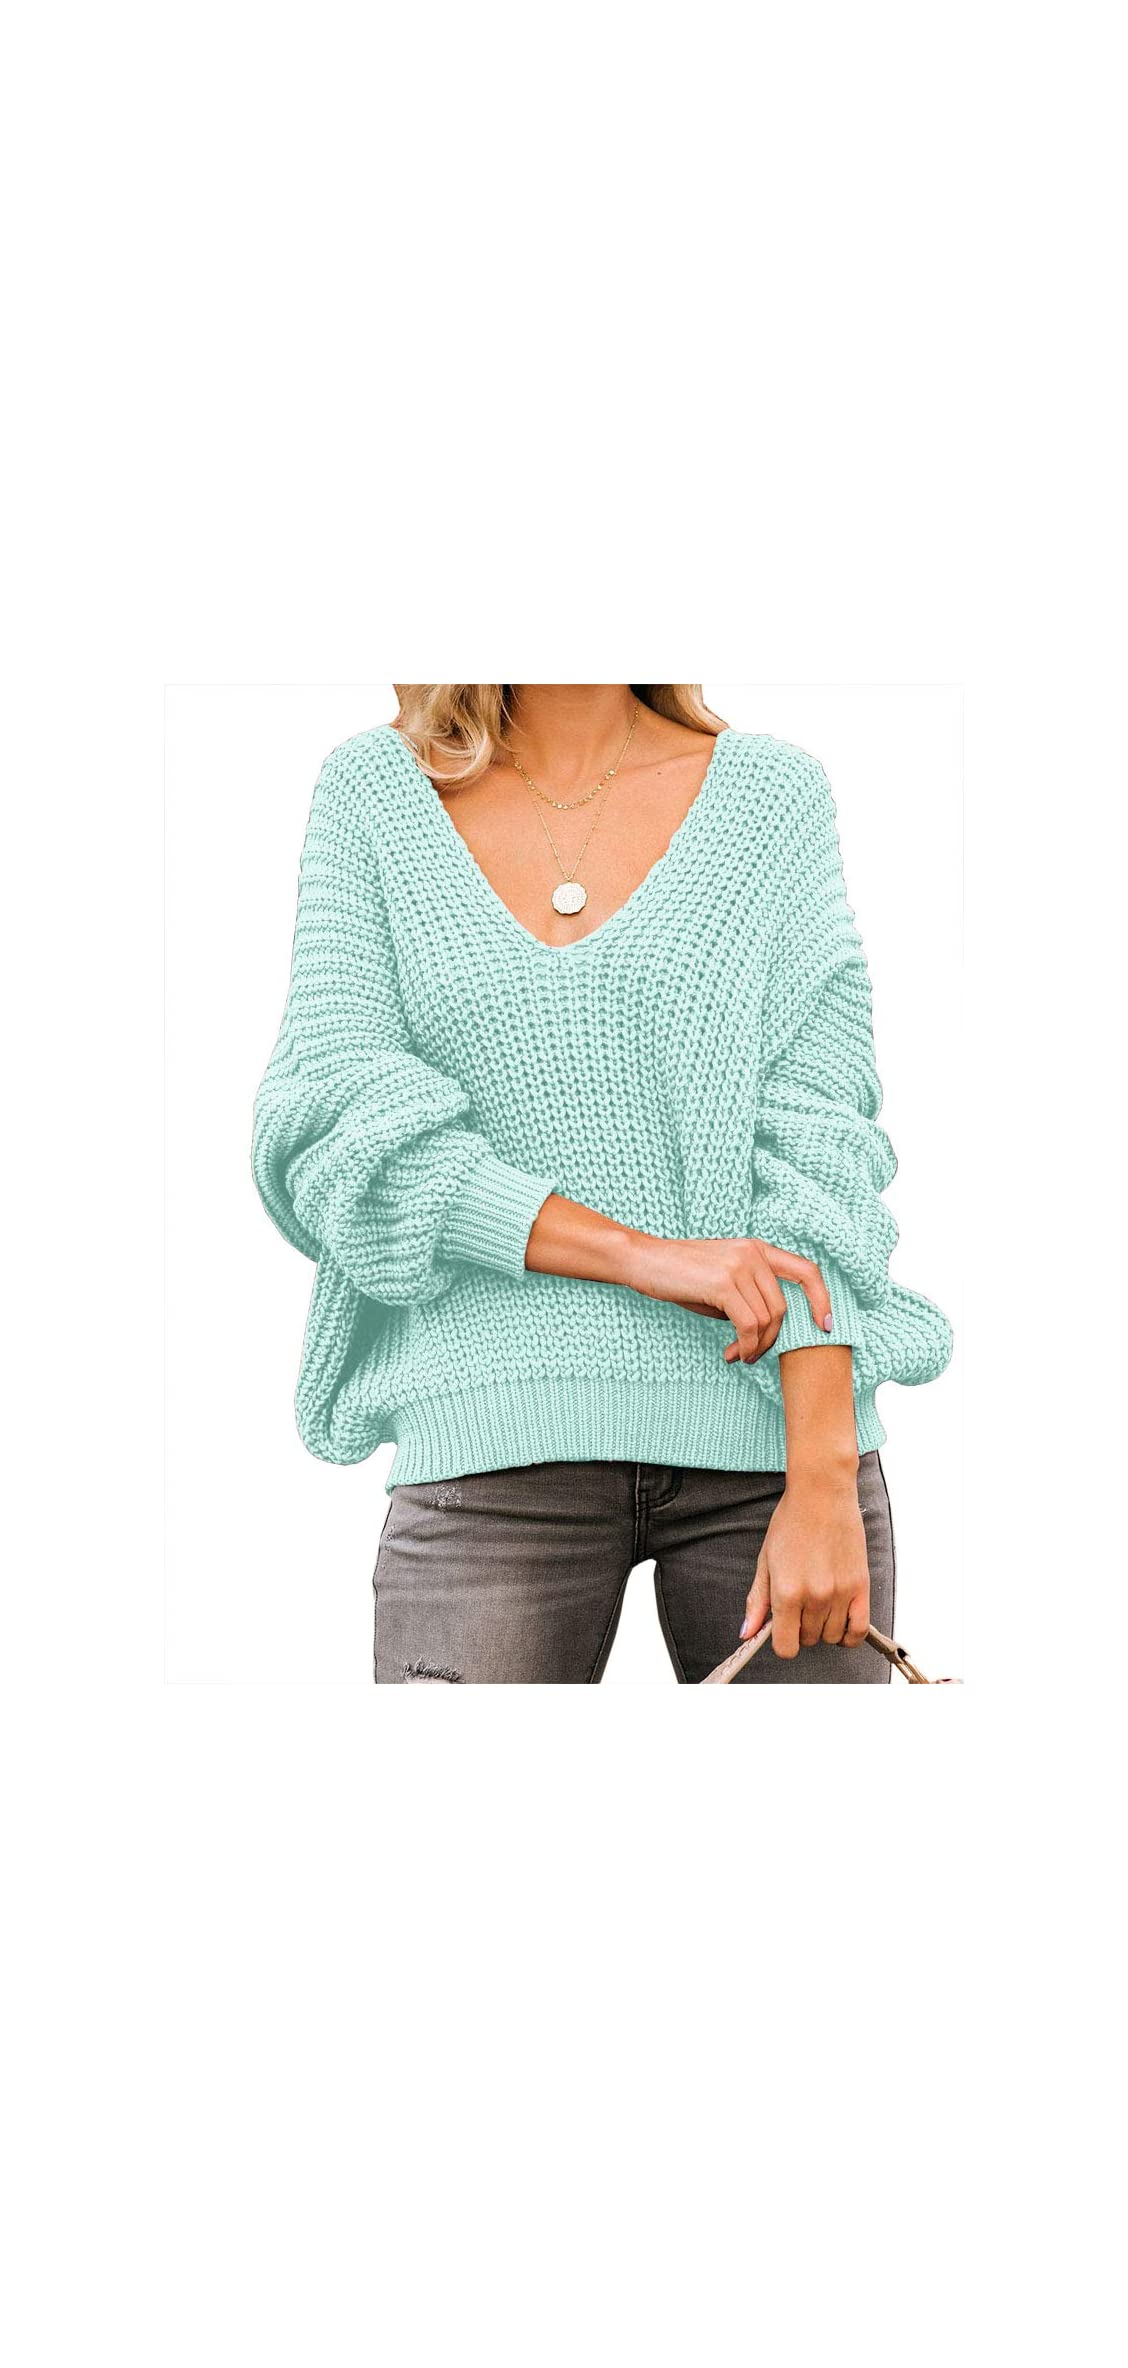 Womens Sweaters Oversized Off The Shoulder V Neck Pullover Knit